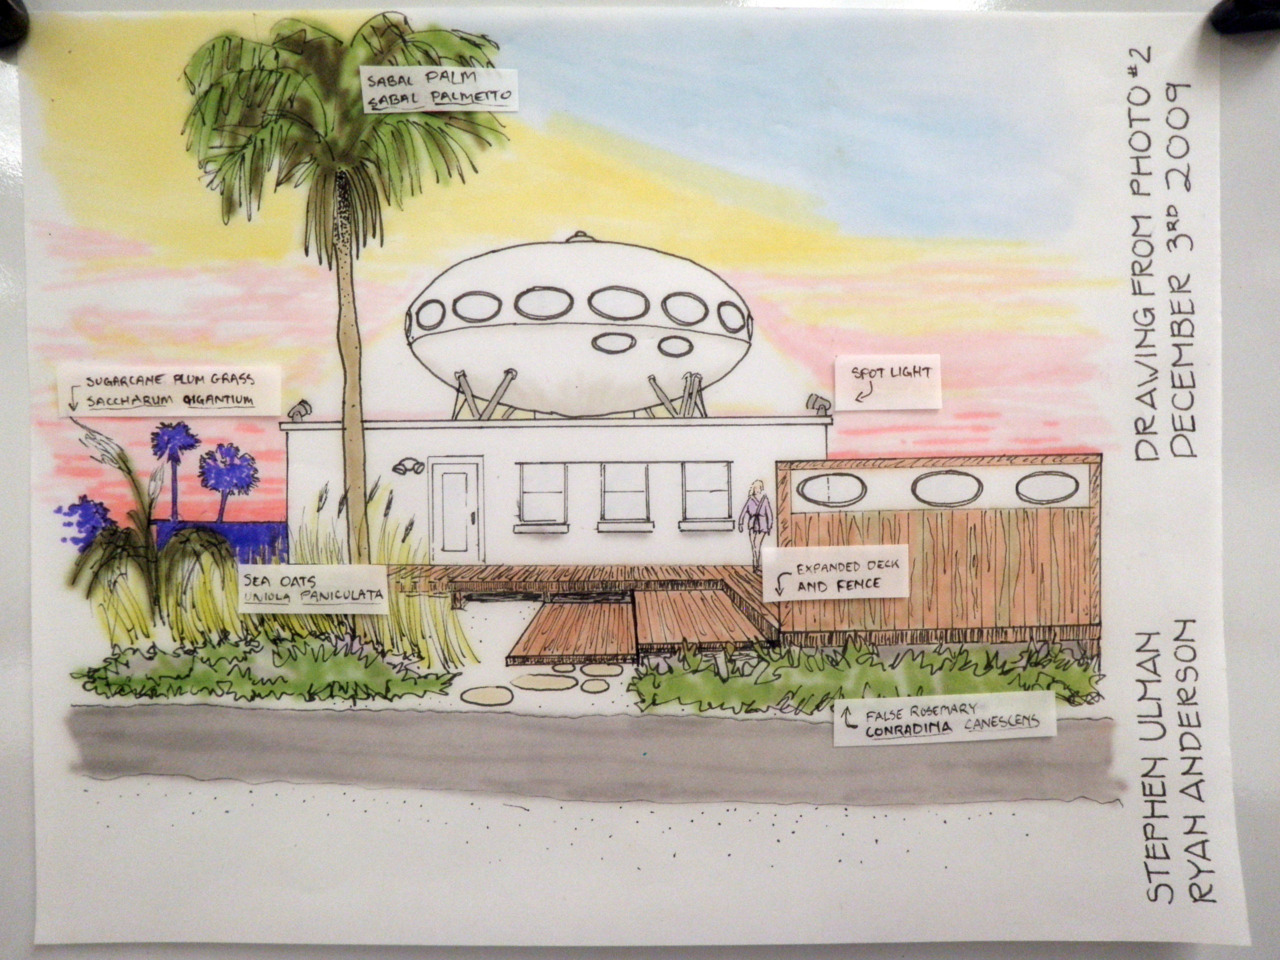 Futuro, Gulf Breeze, Florida, USA - Stephen Ulman drawing